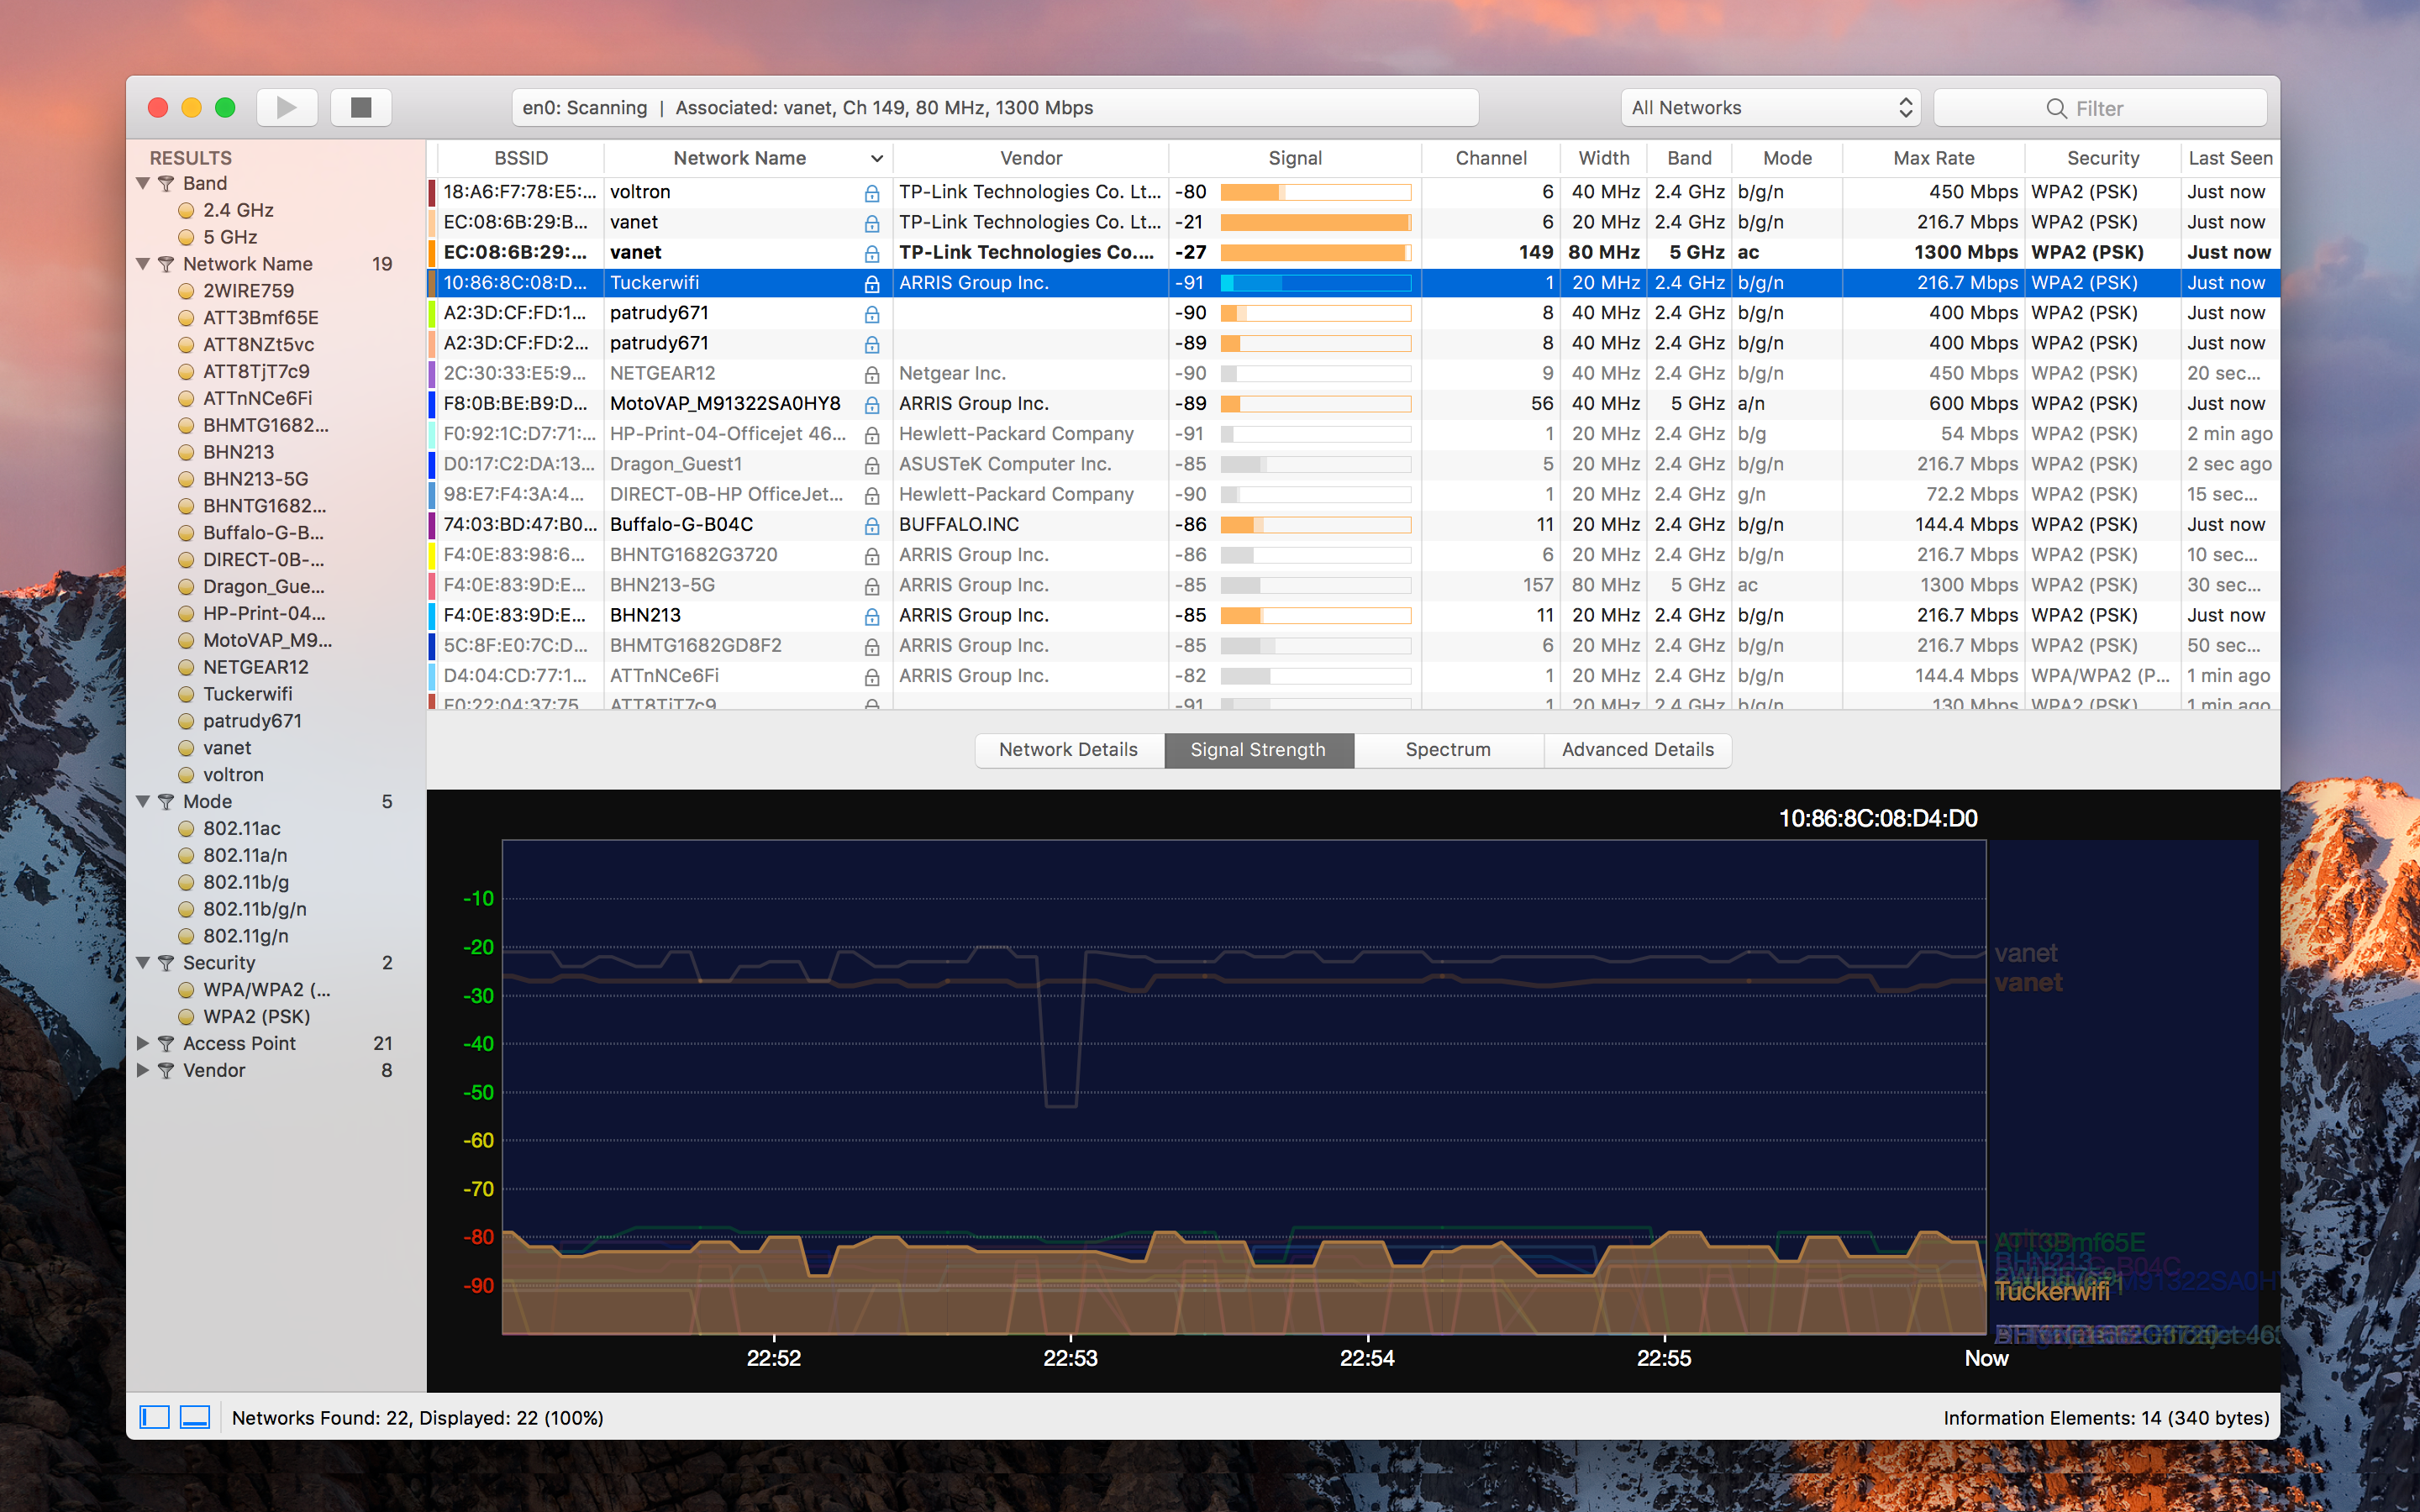 WiFi Explorer provides an option to display signal strength in dBm or percentage values.